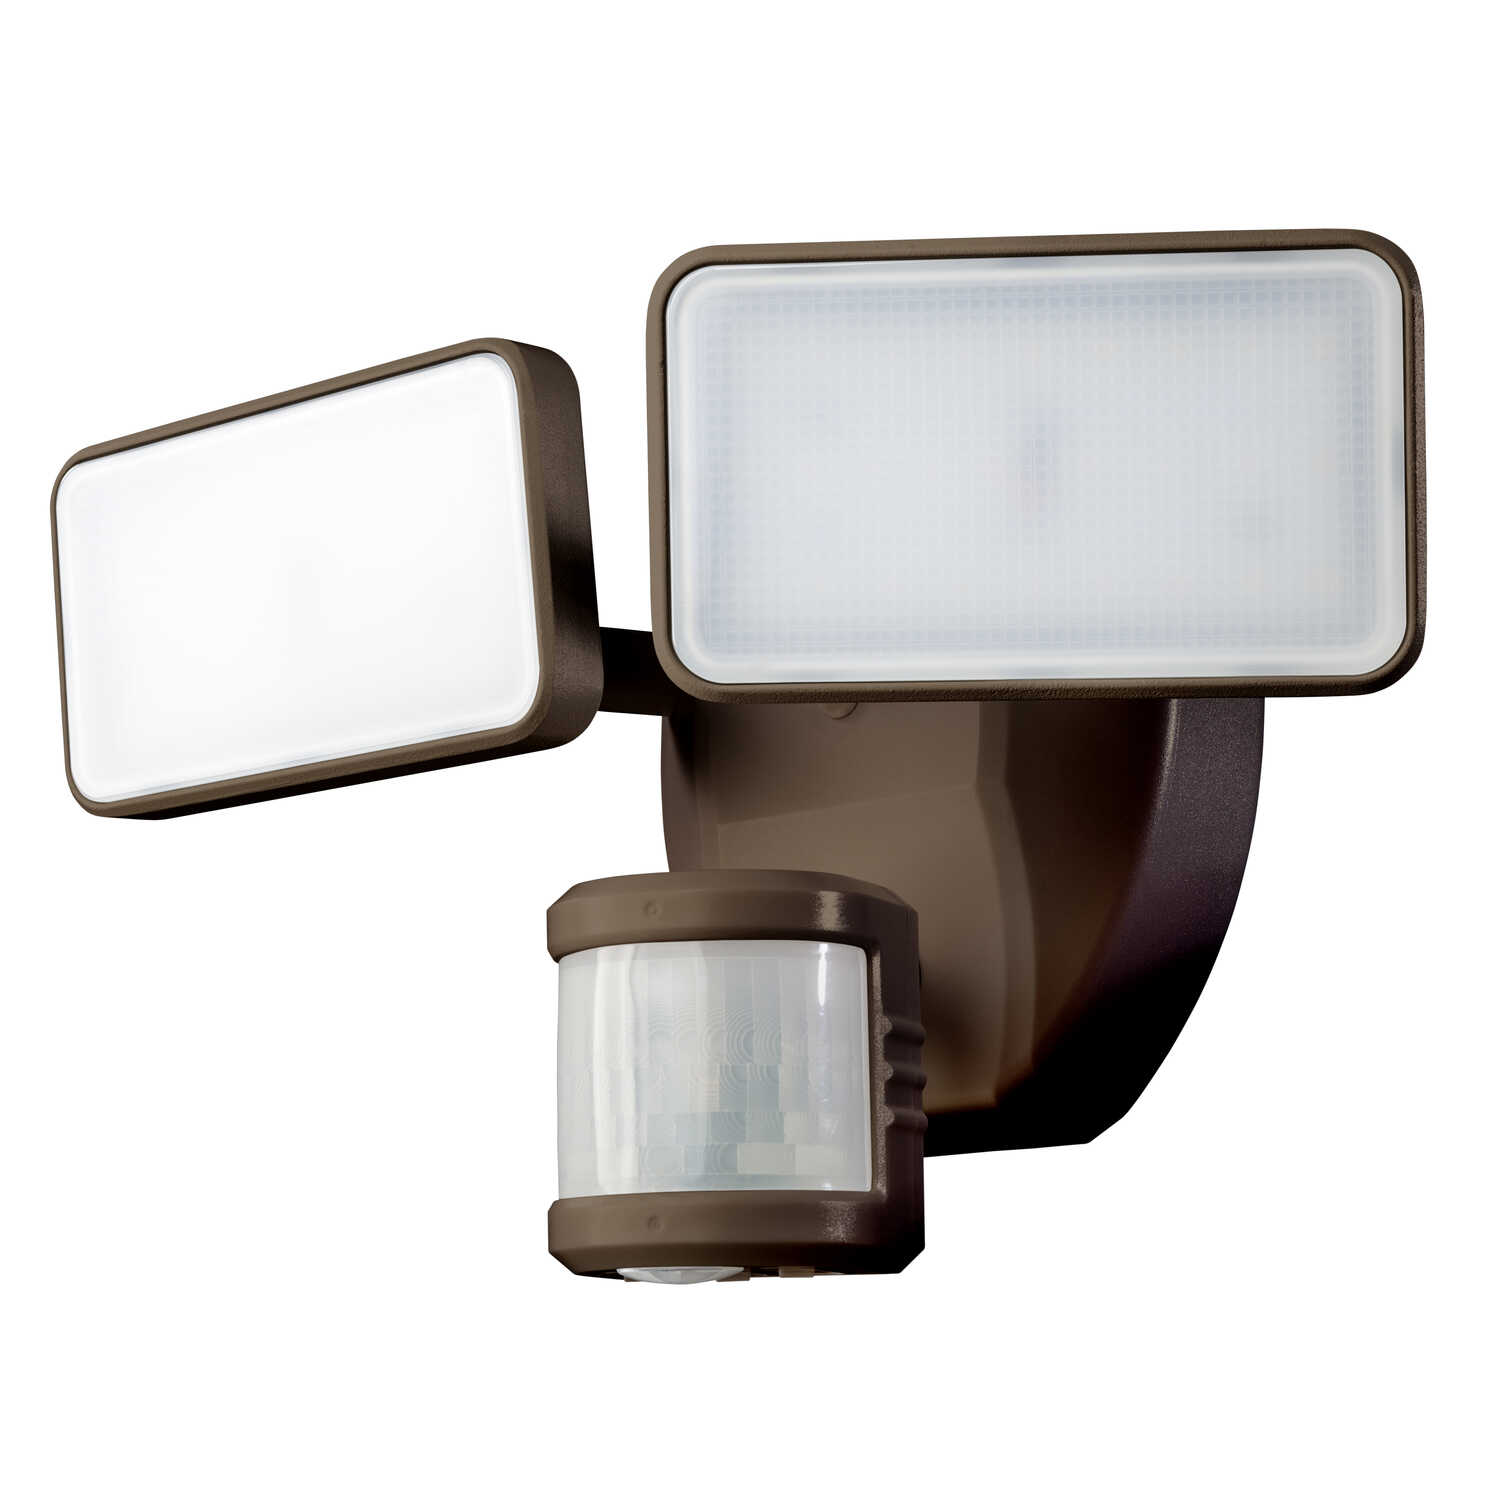 Heath Zenith  Motion-Sensing  Hardwired  LED  Bronze  Security Wall Light